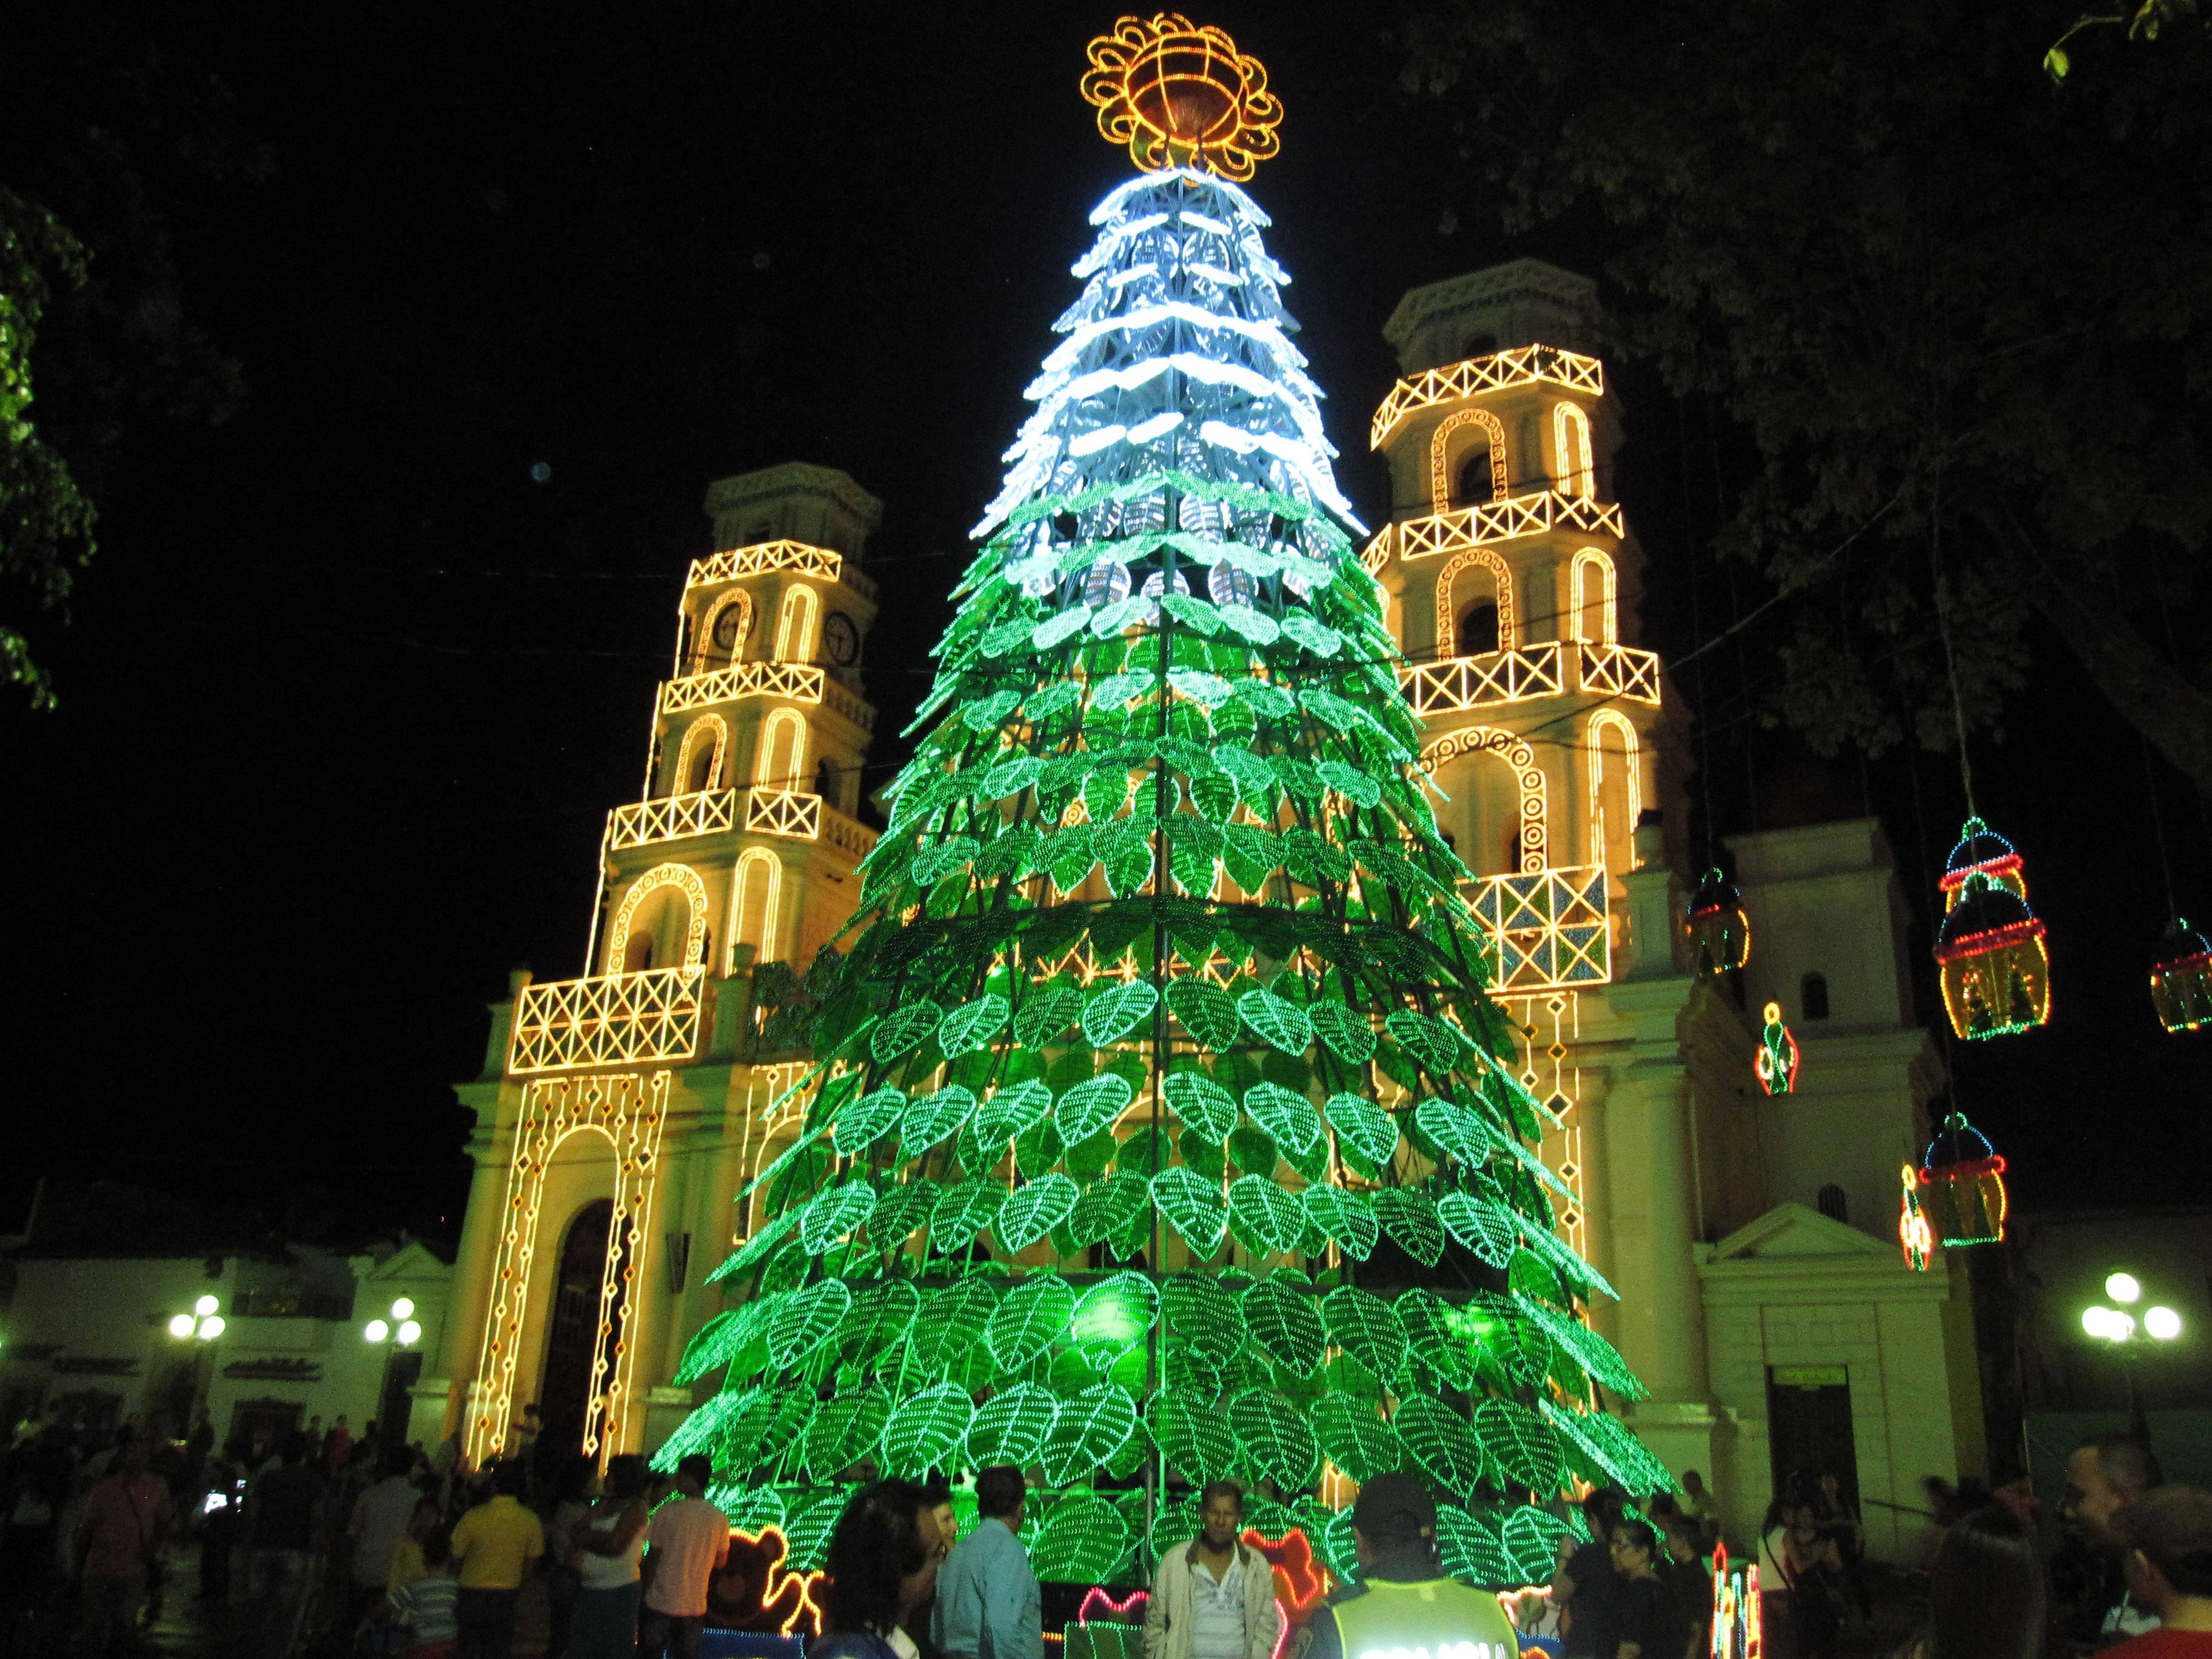 Beth Harpaz and her family saw the holiday lights in Medellin, Colombia, with a private guide who drove them around the city. Private tours are no longer the exclusive domain of wealthy travelers as websites make it easy for tourists and local guides to connect.